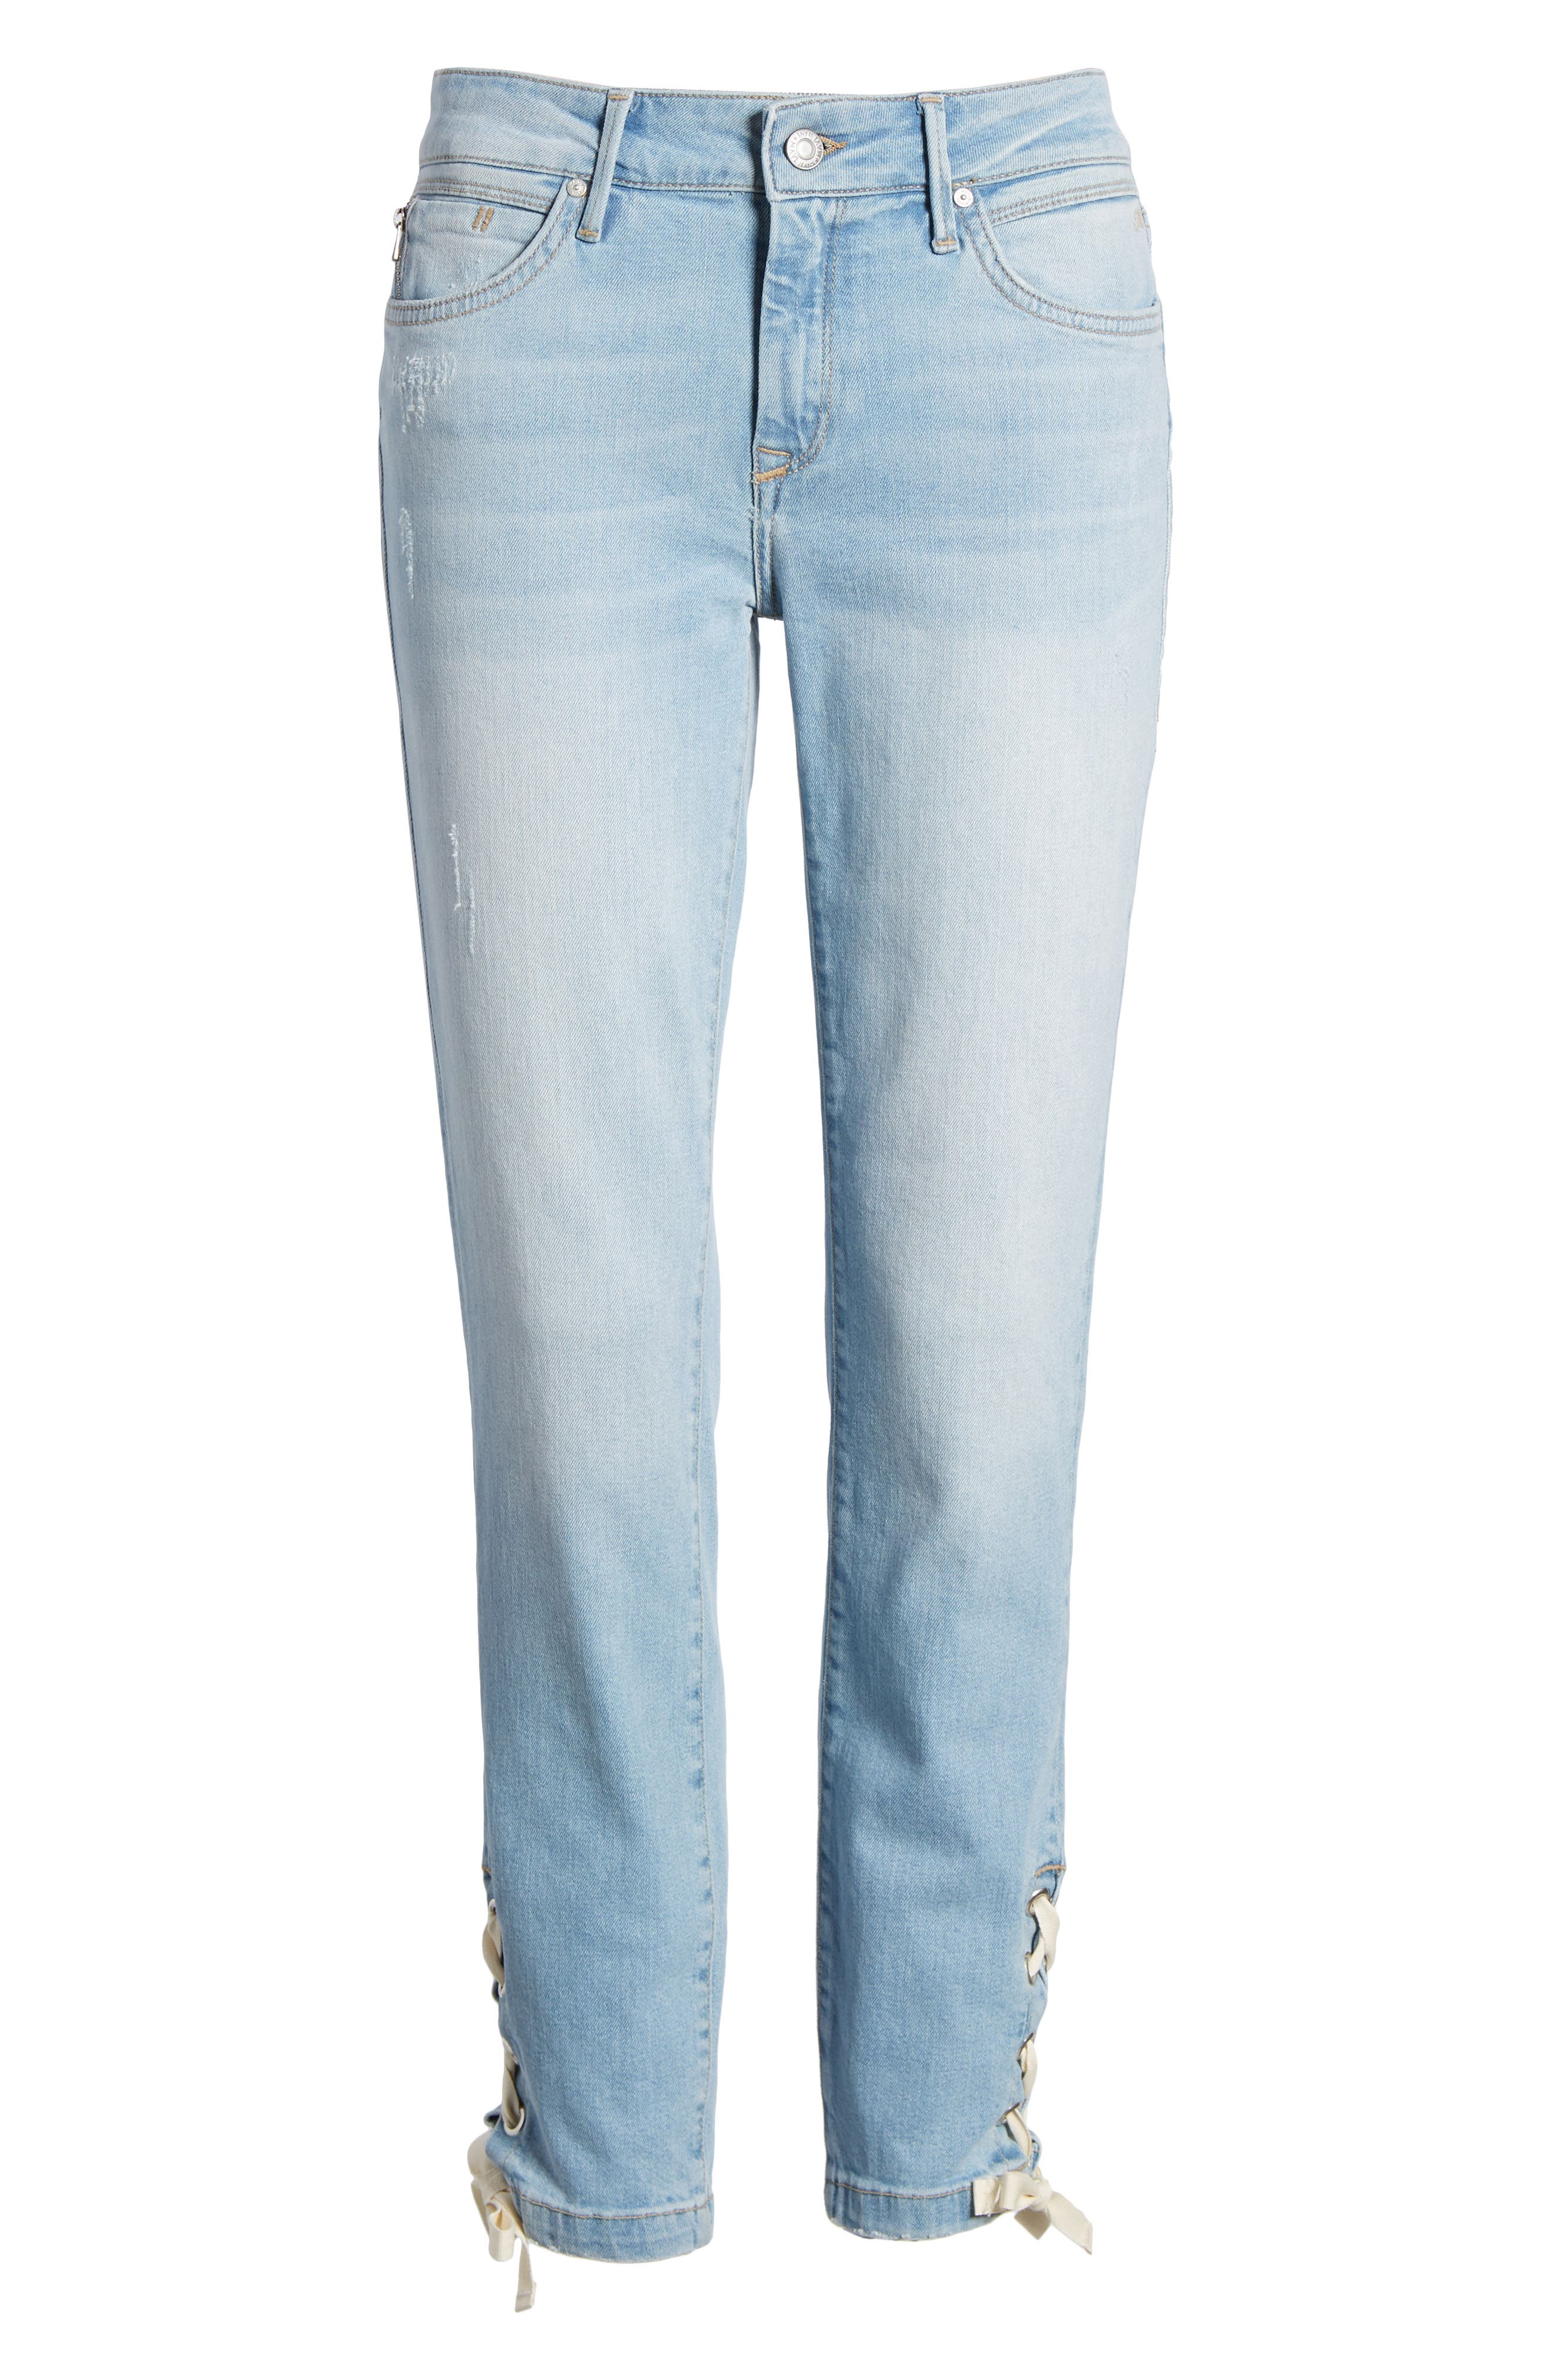 Adriana Laced Ankle Skinny Jeans,                             Alternate thumbnail 7, color,                             Bleach Summer Lace